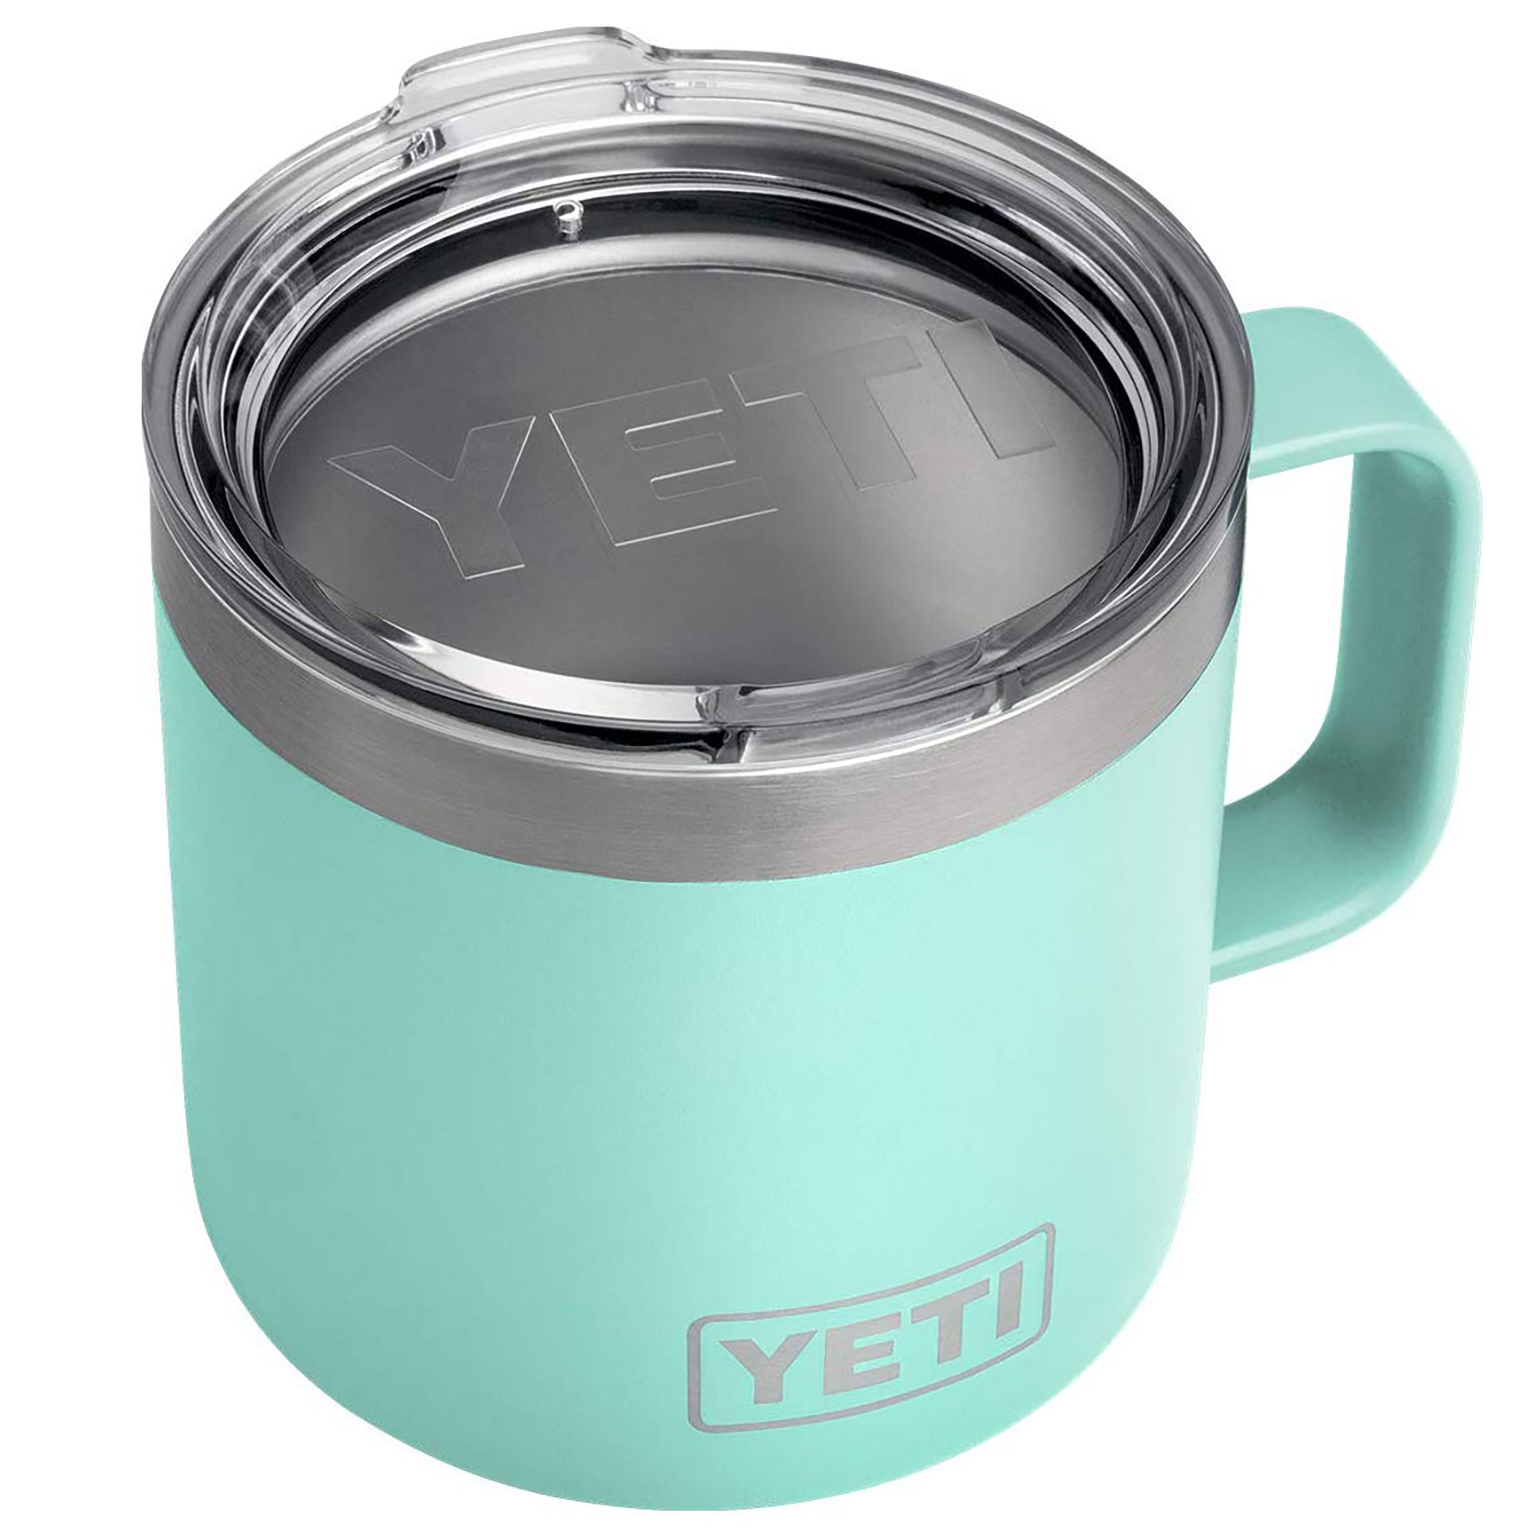 Amazon YETI Rambler 14 oz Stainless Steel Vacuum Insulated Mug